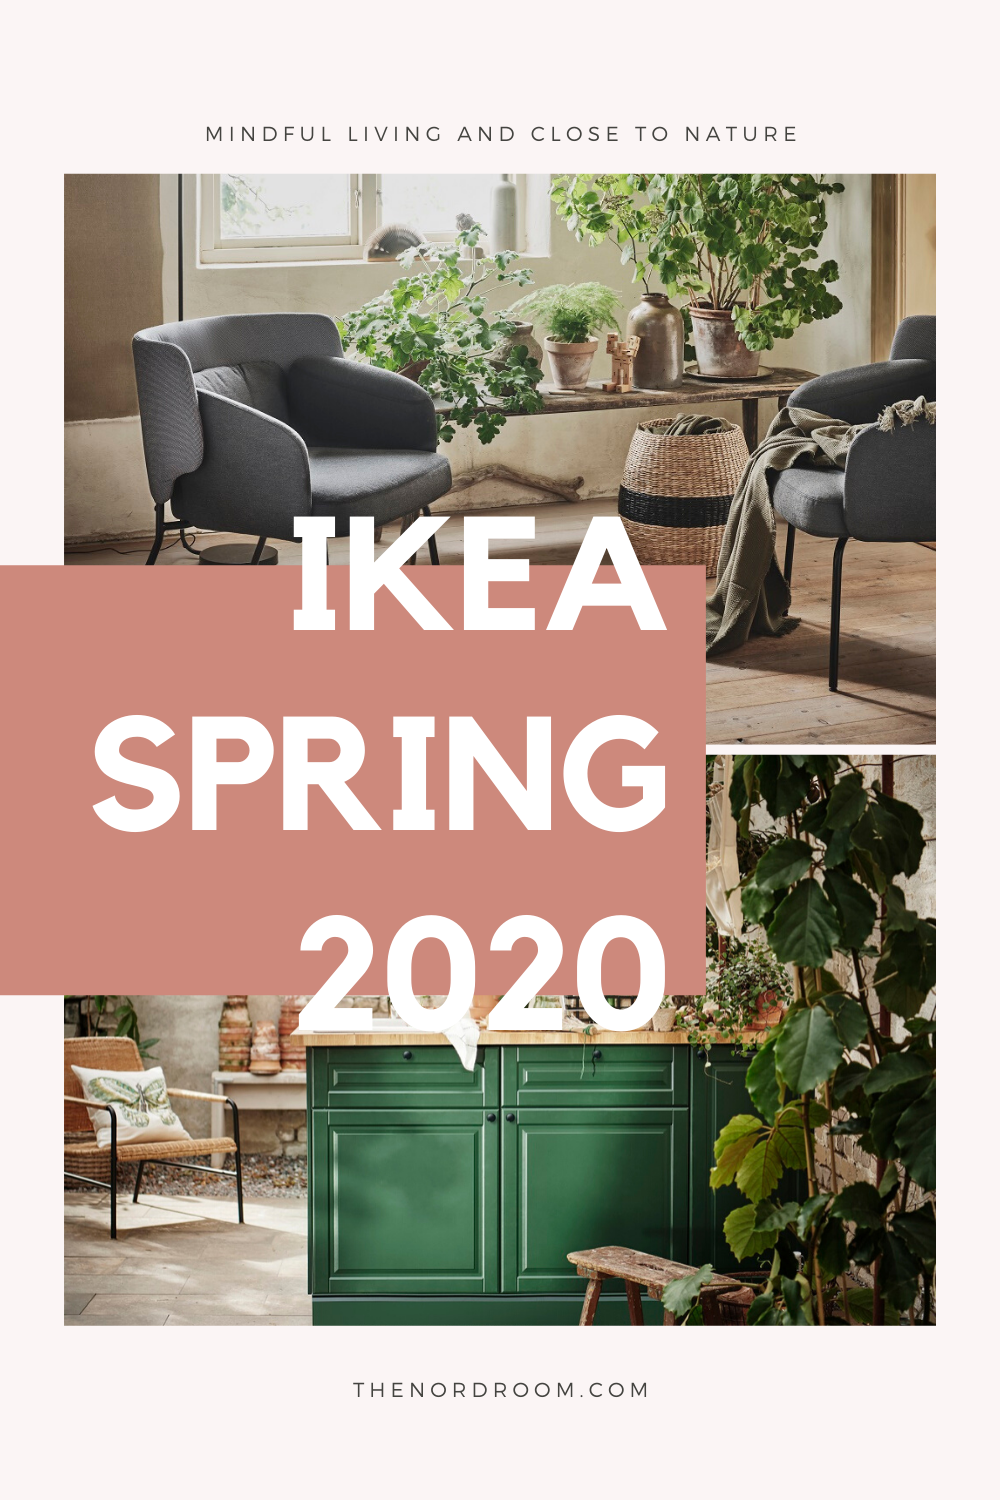 IKEA Spring Collection 2020: Mindful Living and Close to Nature